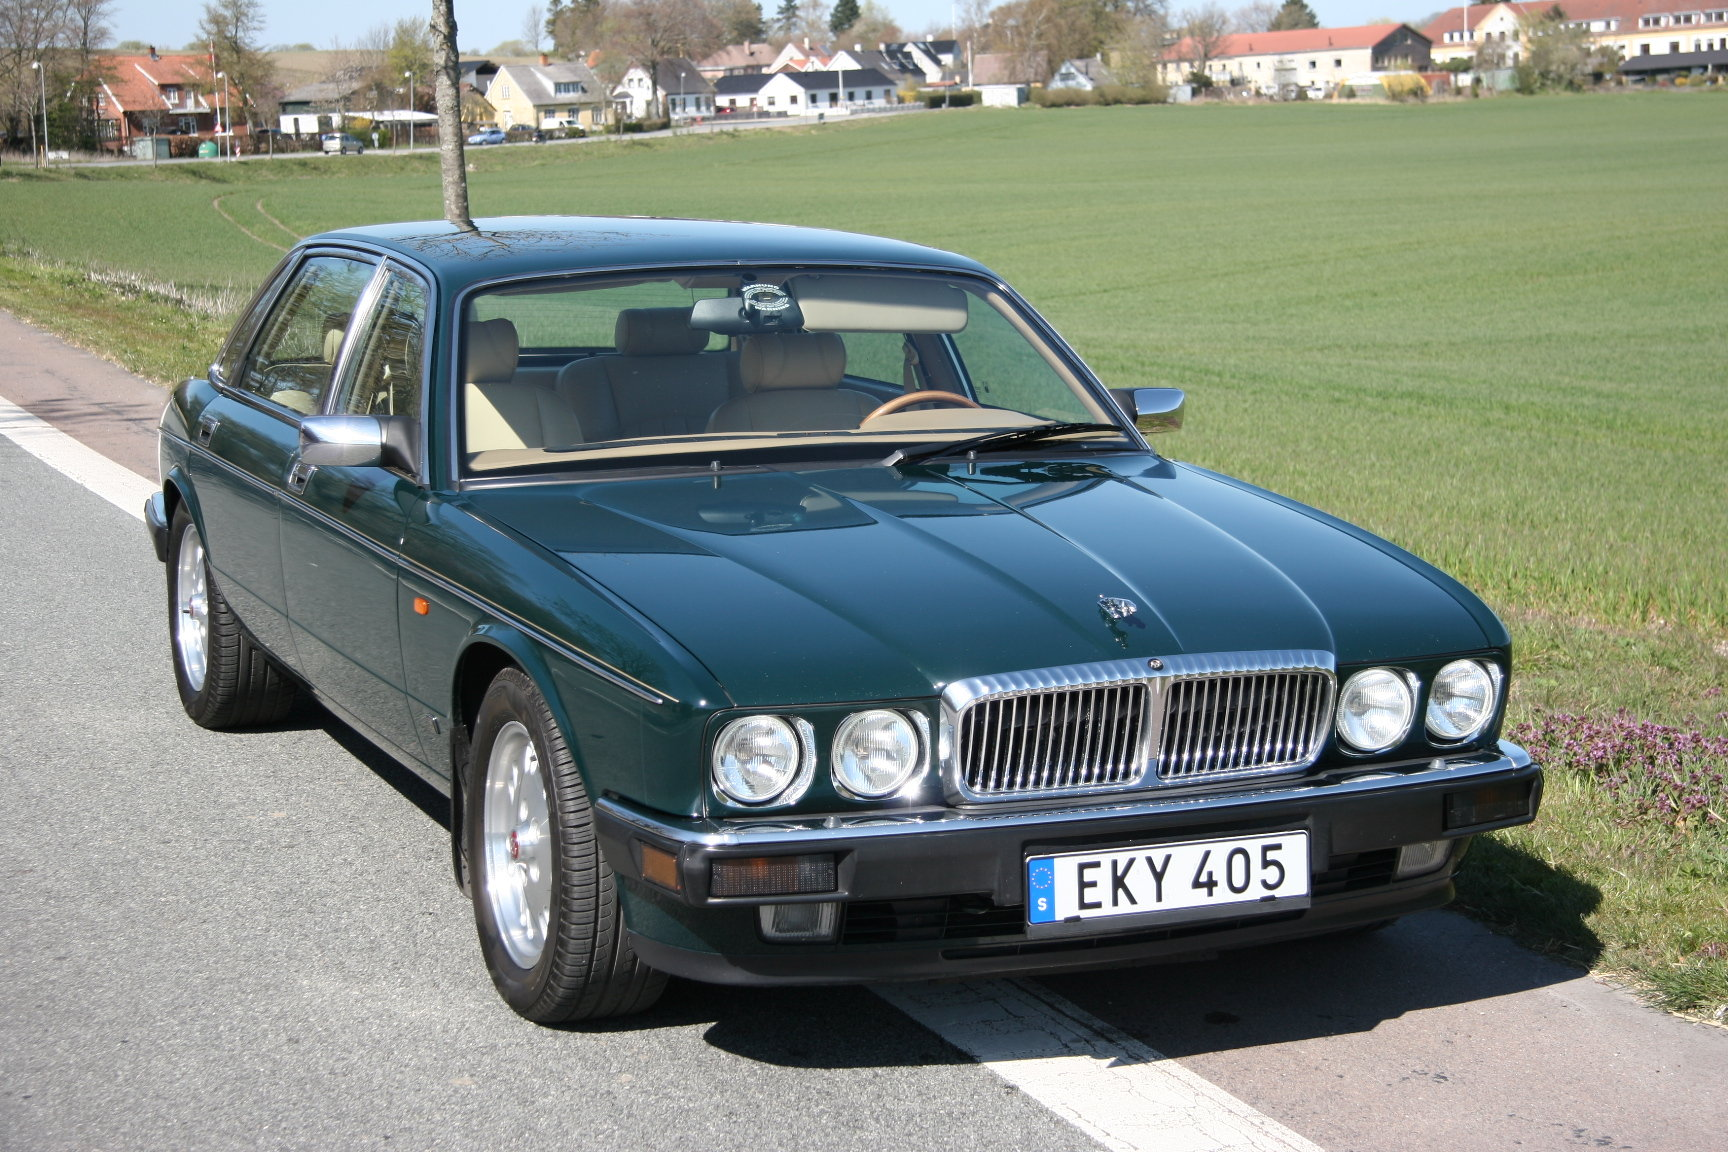 1994 Daimler Double Six Majestic Insignia - NEW PRICE For Sale (picture 2 of 6)